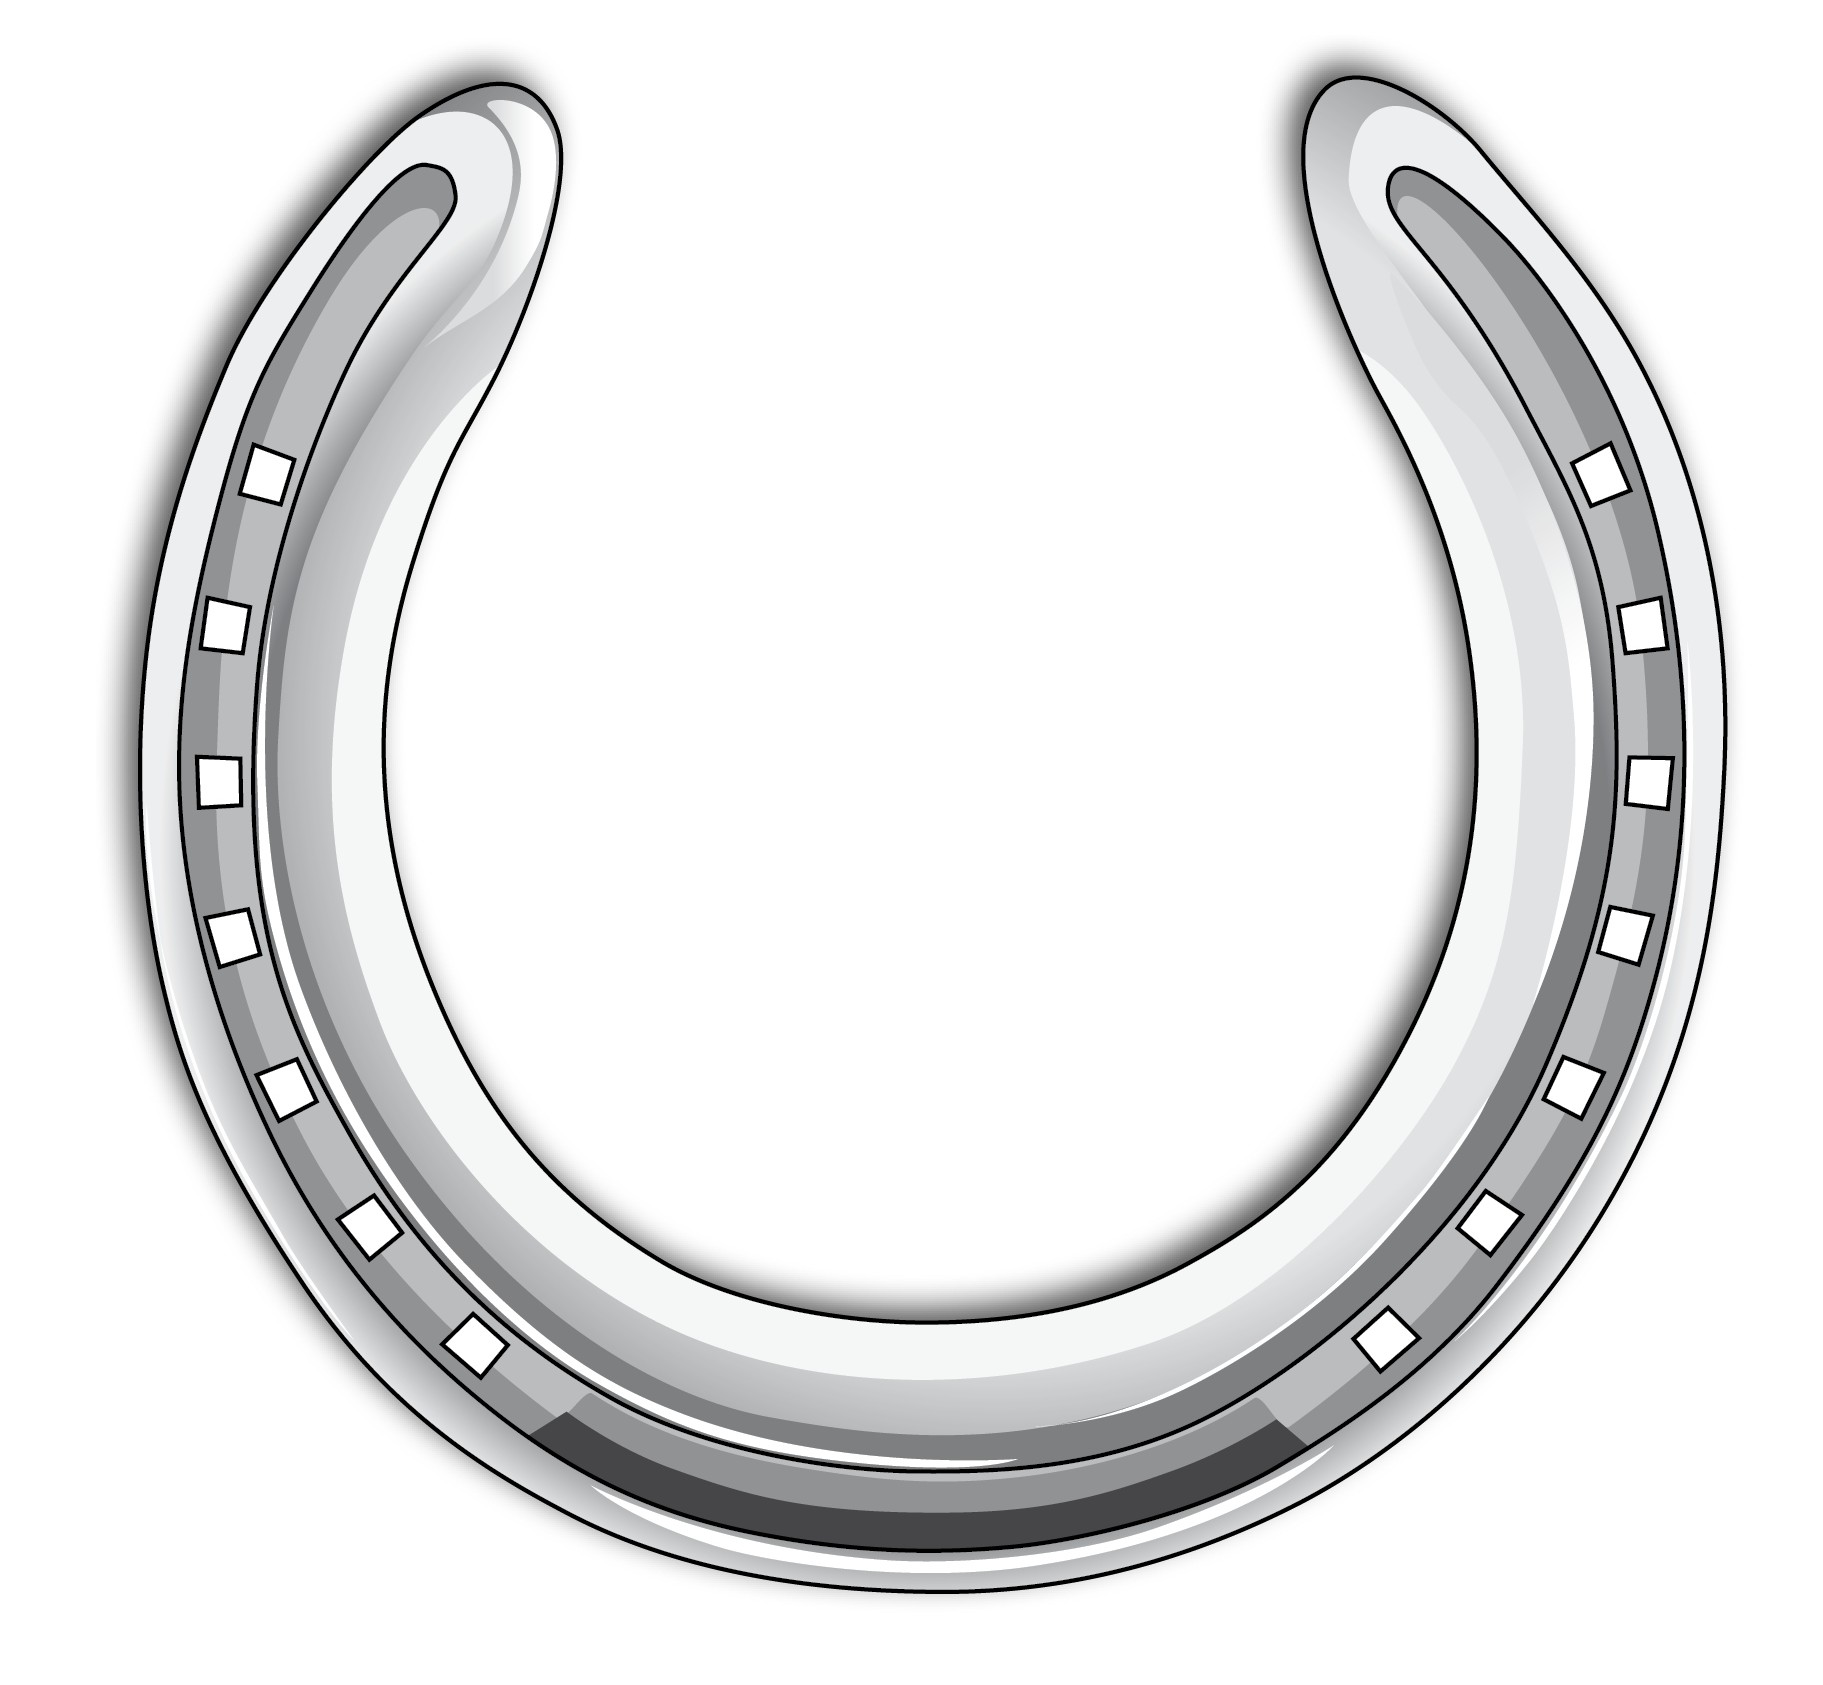 Drawn horseshoe foot Horseshoes Trends Of Download Free